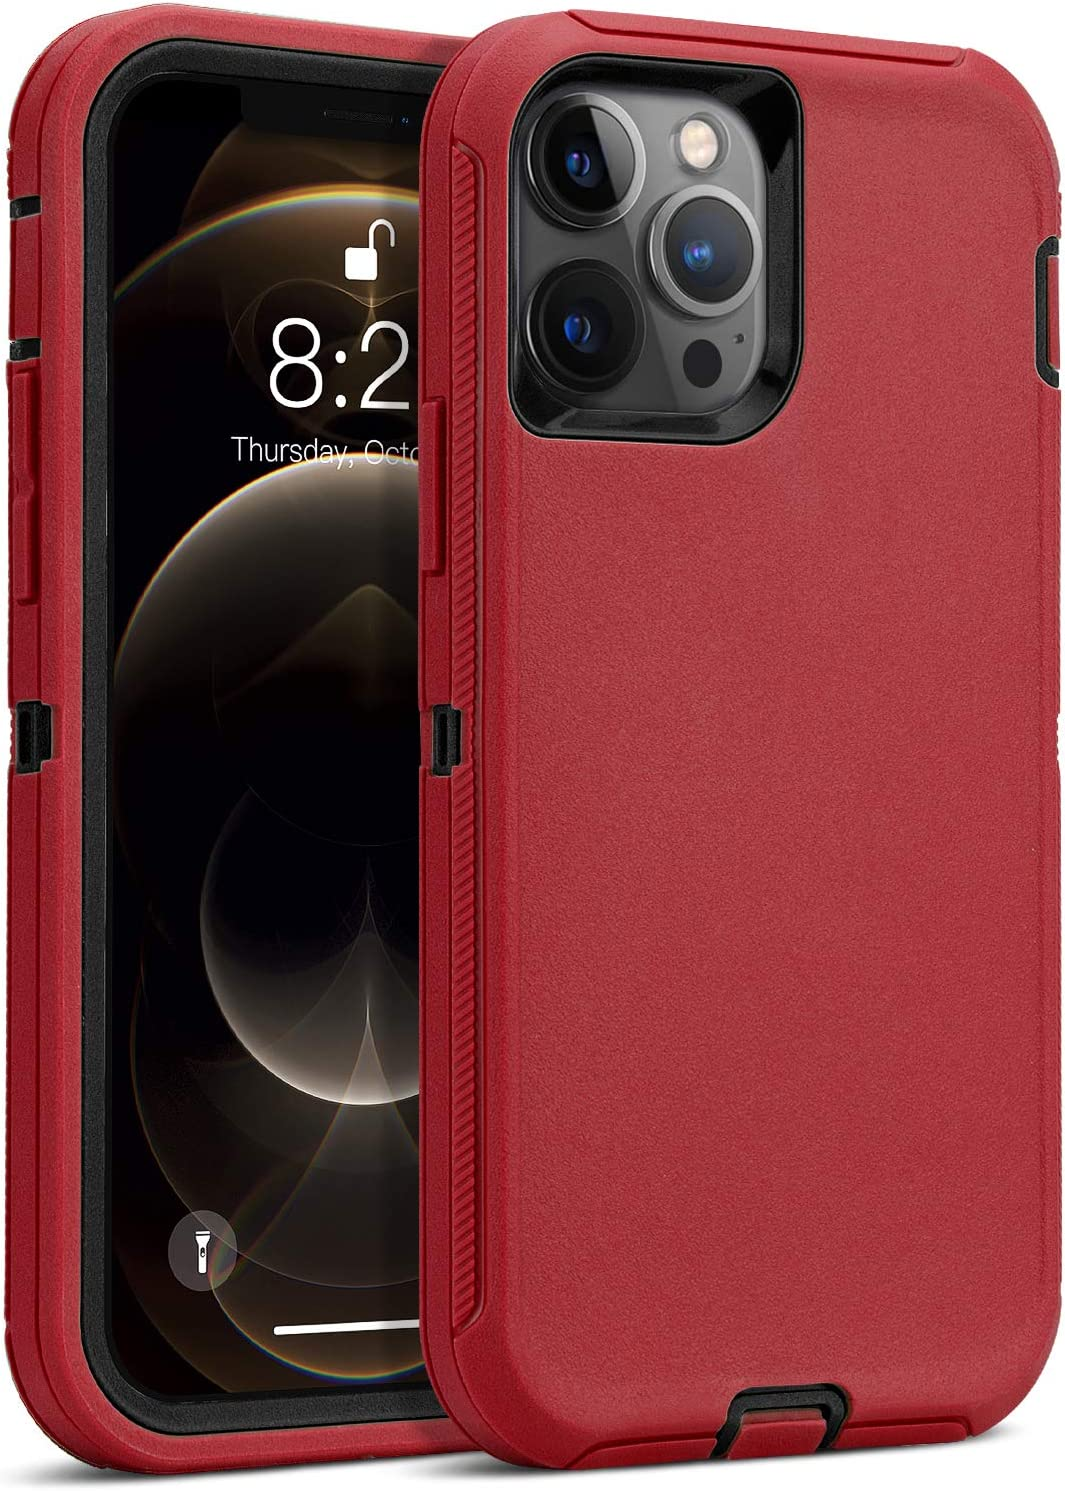 MAXCURY Case Compatible for iPhone 12 Pro, Heavy Duty Shock Absorption Full Body Protective Silicone Rubber with Hard PC Phone Case Cover Both Compatible for iPhone 12 & iPhone 12 Pro(Red/Black)